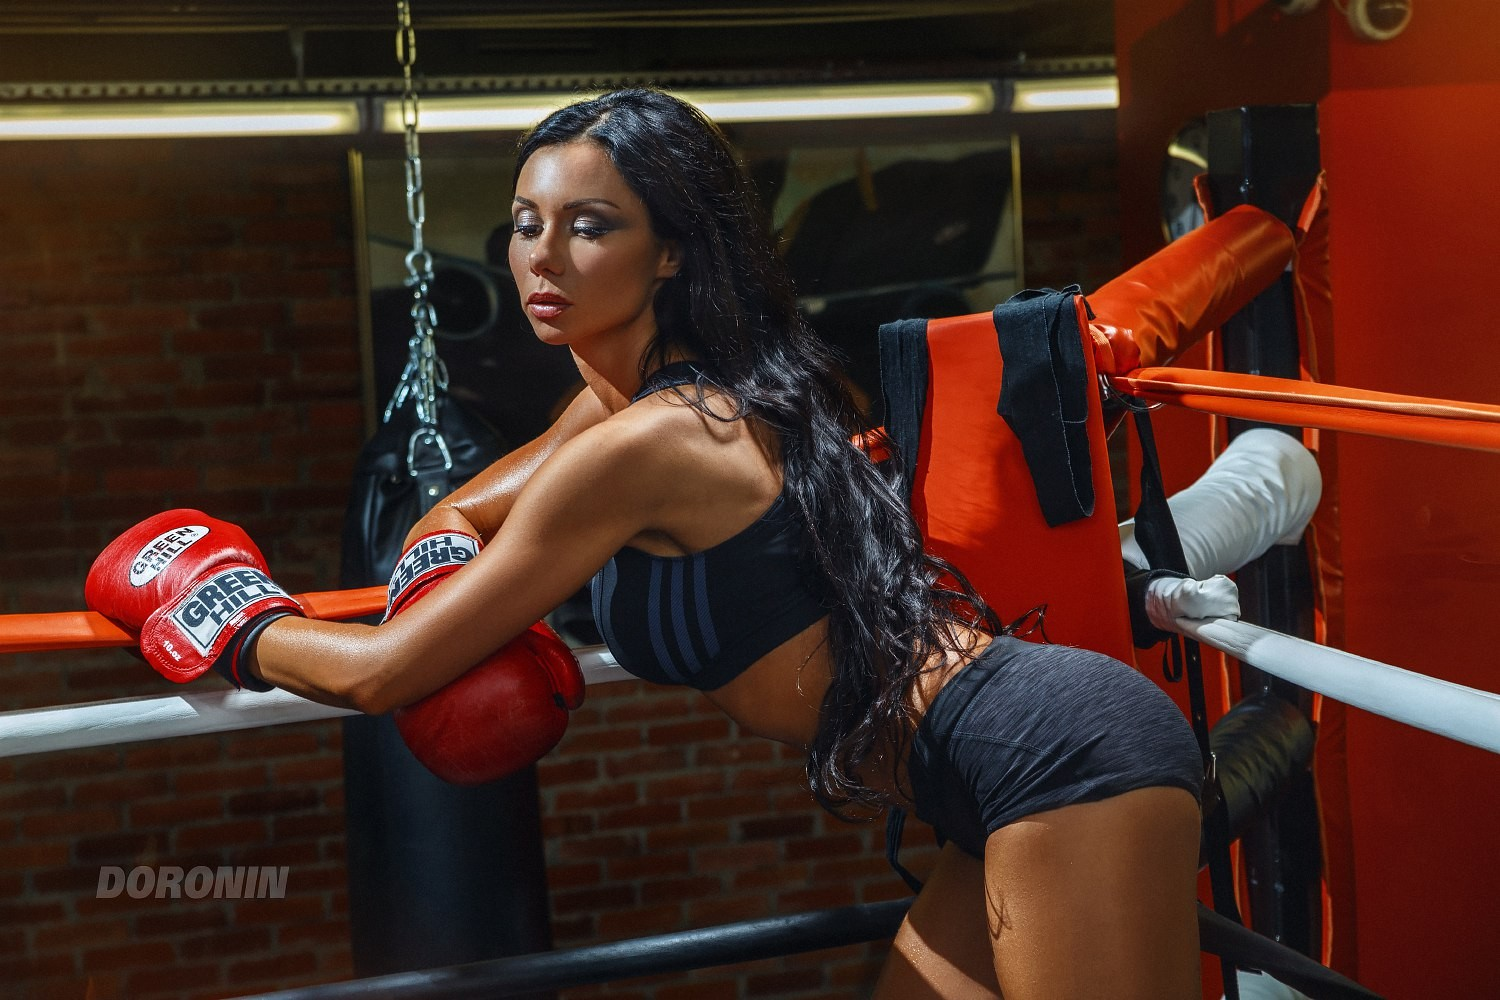 People 1500x1000 women model closed eyes gym clothes ass brunette long hair black hair boxing gloves